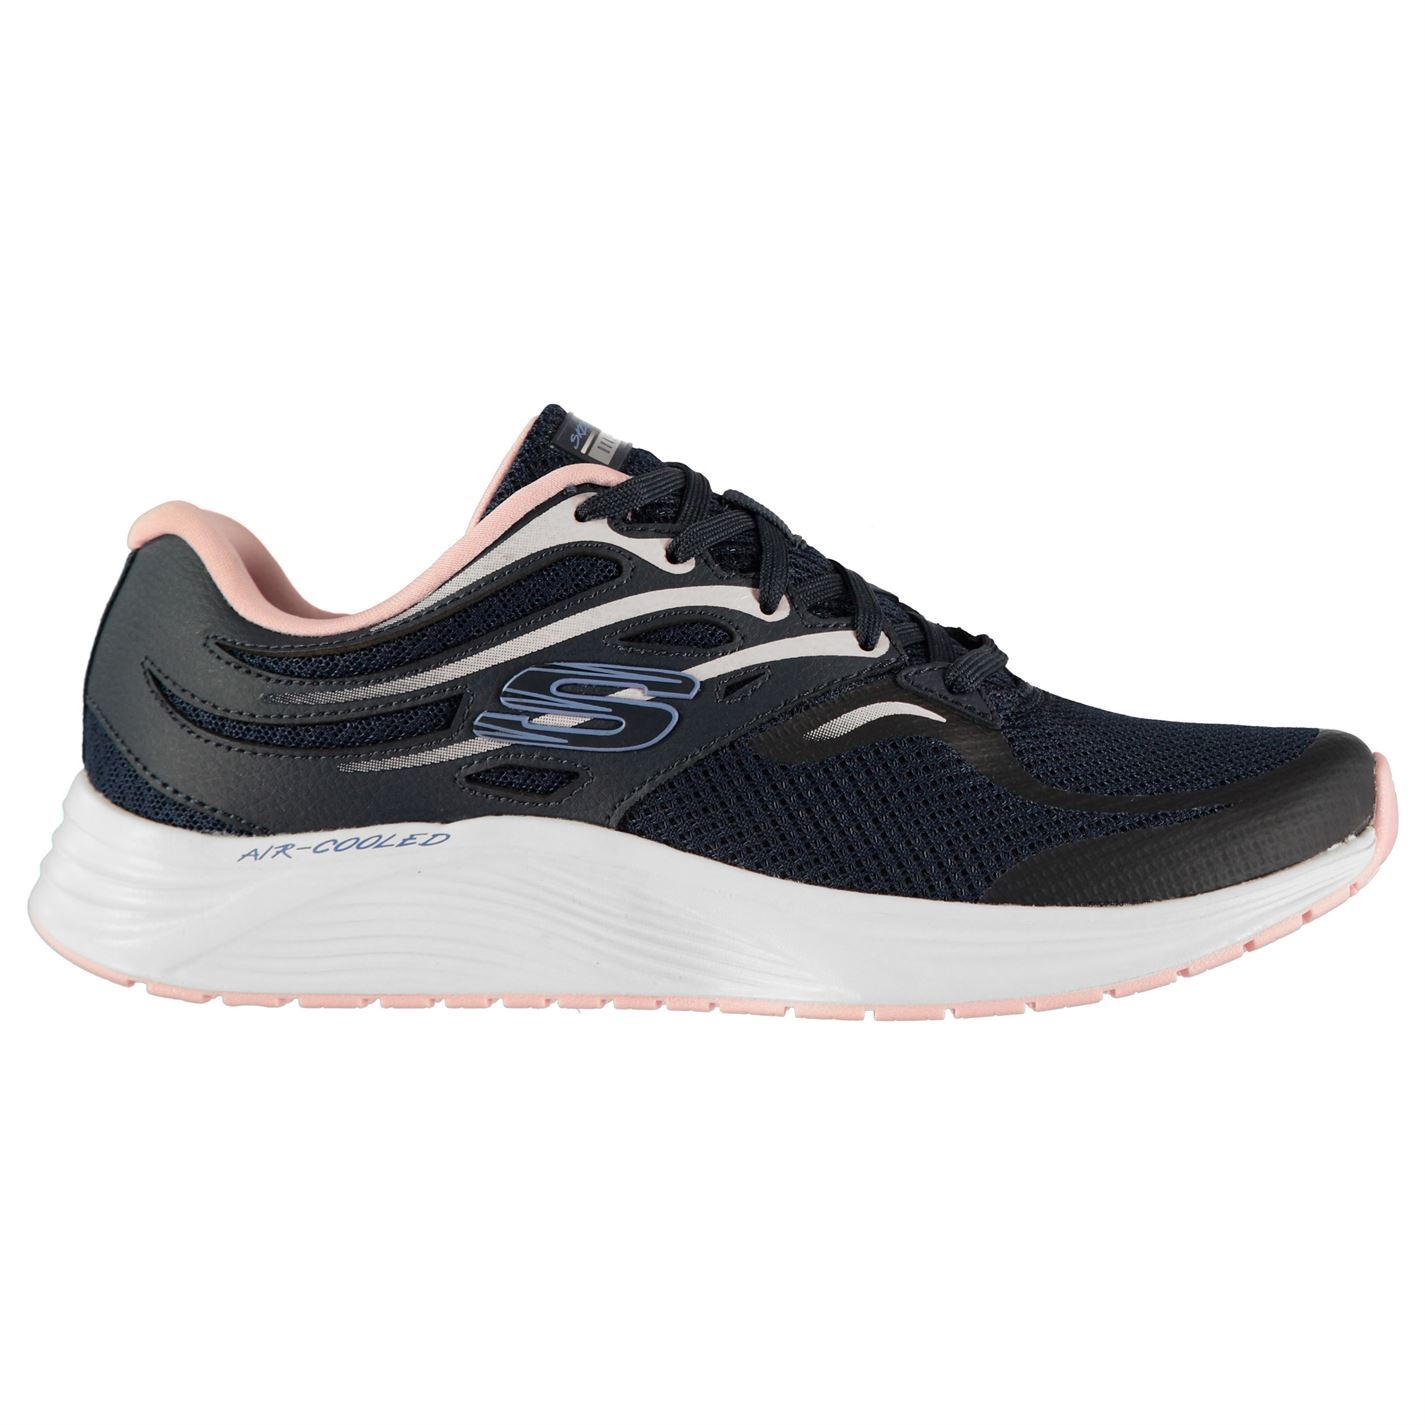 Skechers Up Damenschuhe Skyline Aglo Trainers Runners Lace Up Skechers Breathable Padded Ankle f905cb